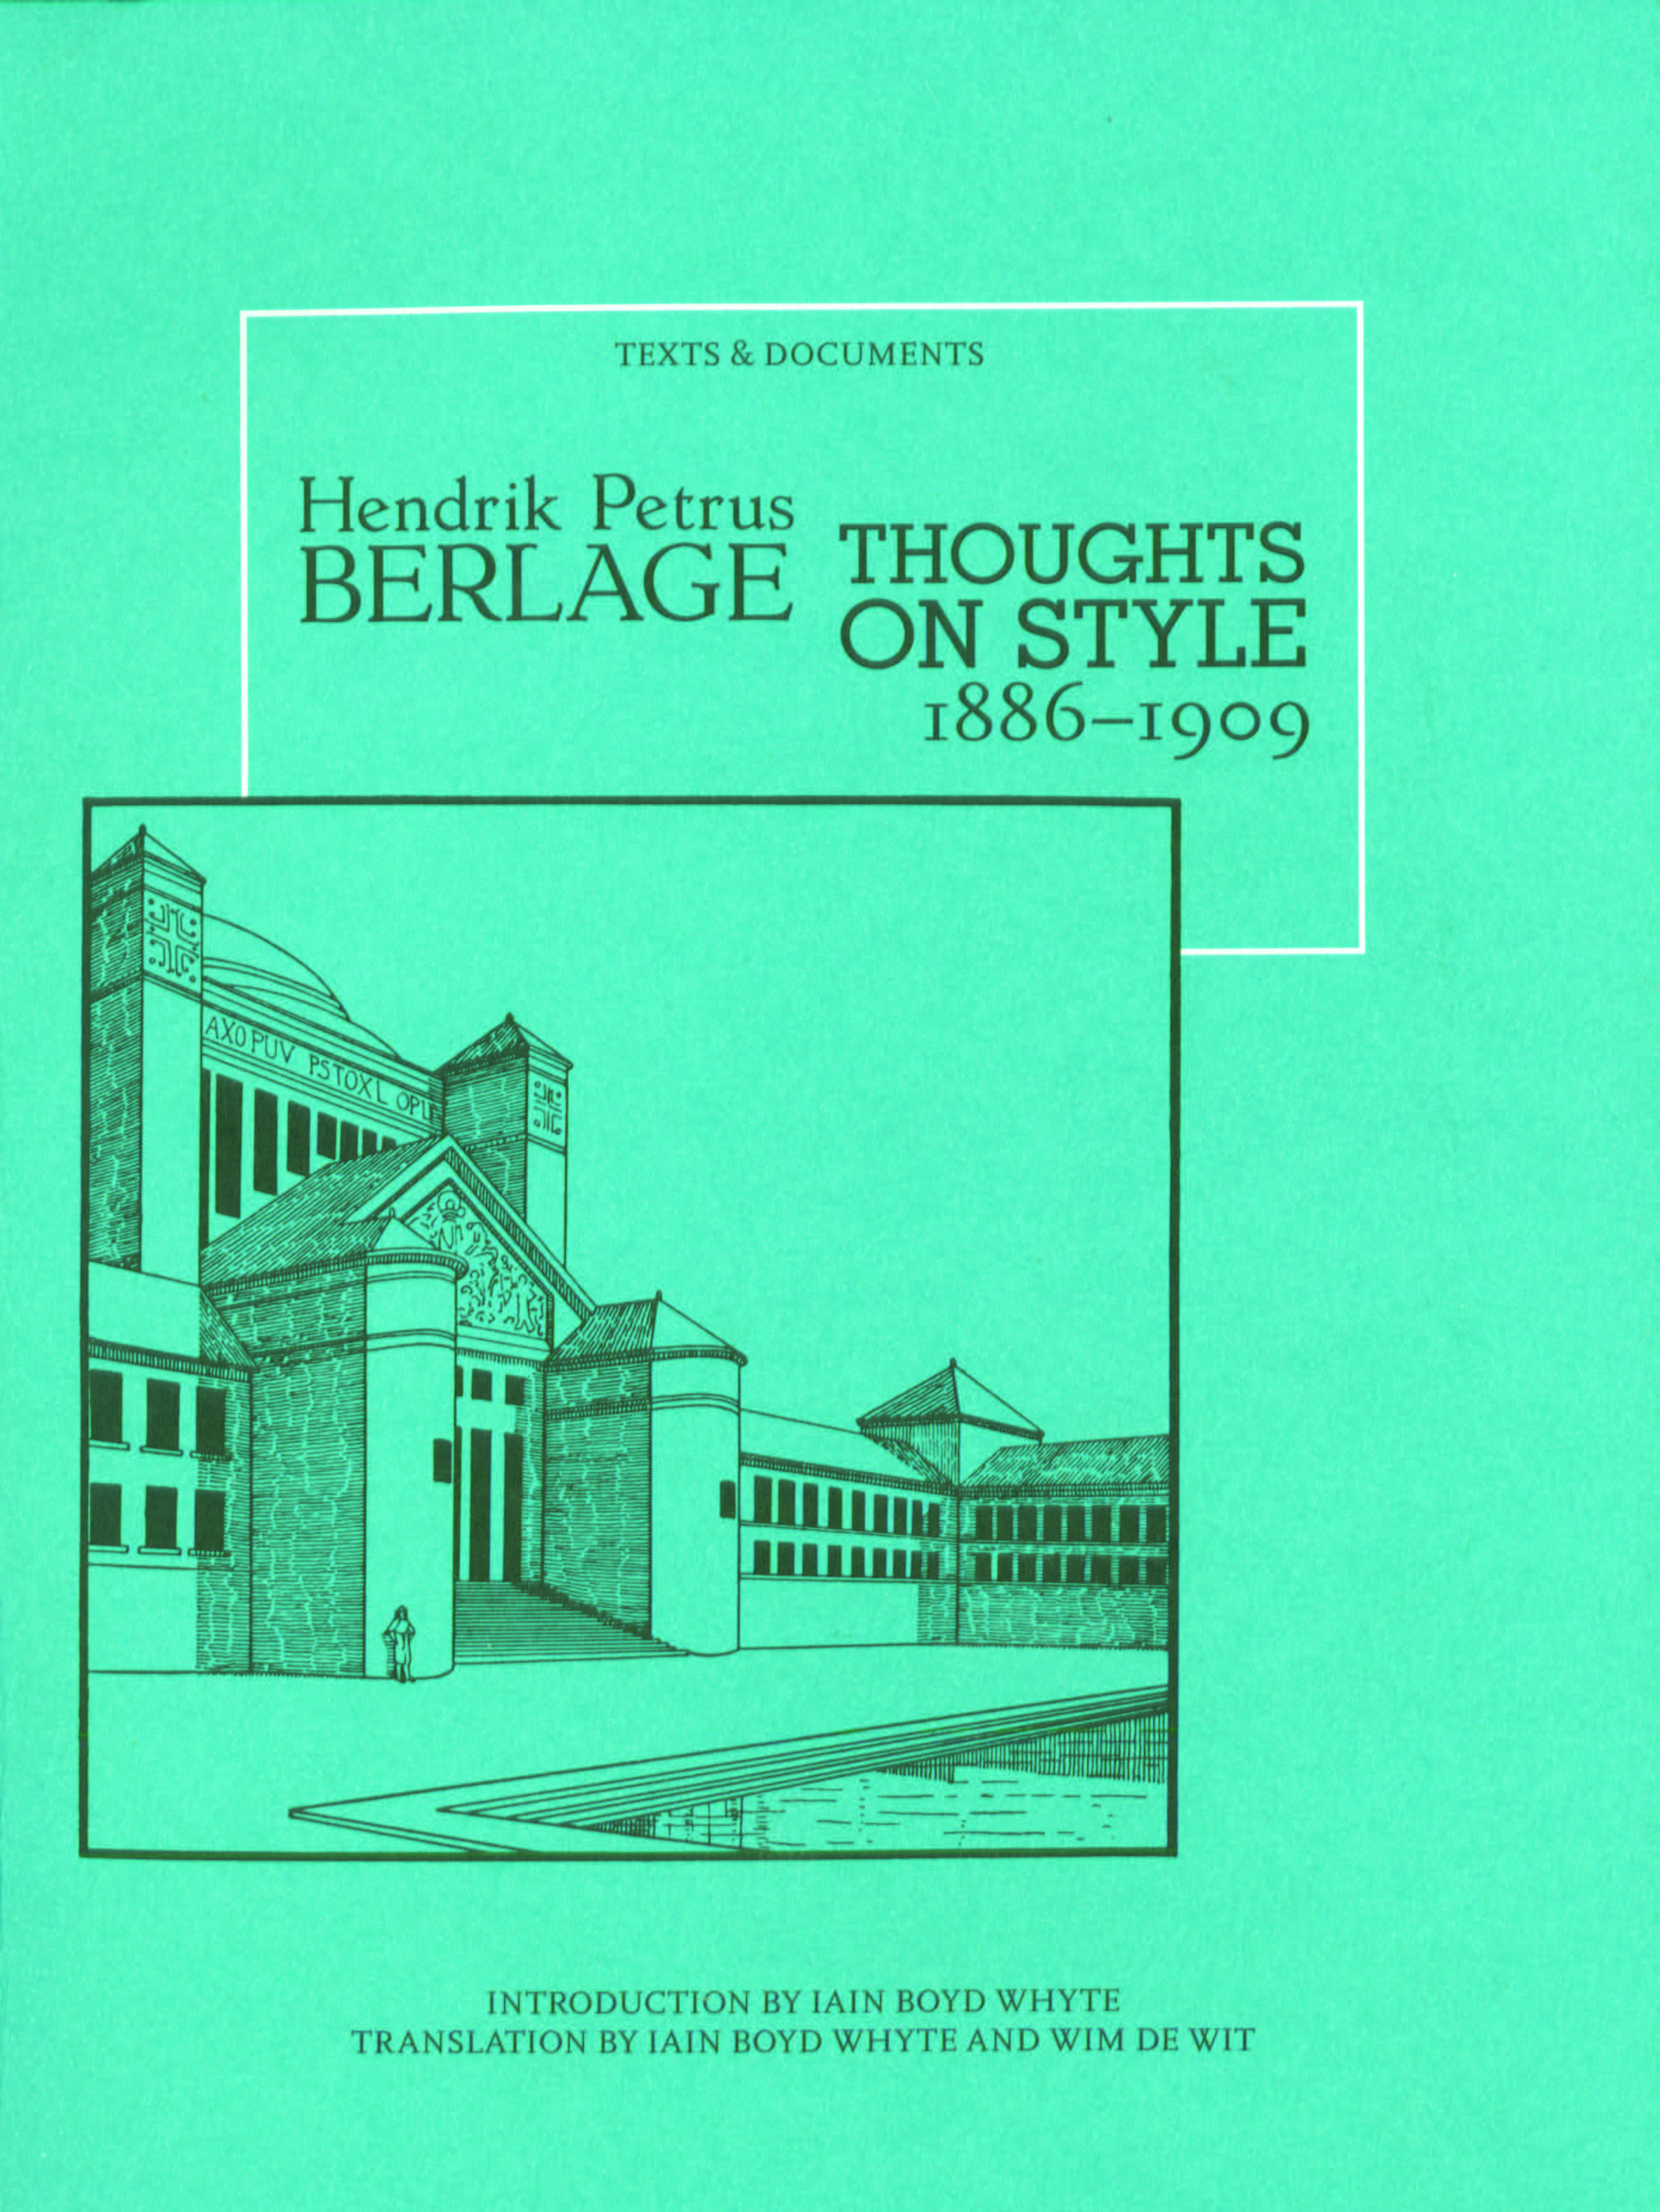 Hendrik Petrus Berlage: Thoughts on Style, 1886-1909  Introduction by Iain Boyd Whyte  Translation by Iain Boyd Whyte and Wim de Wit  1996